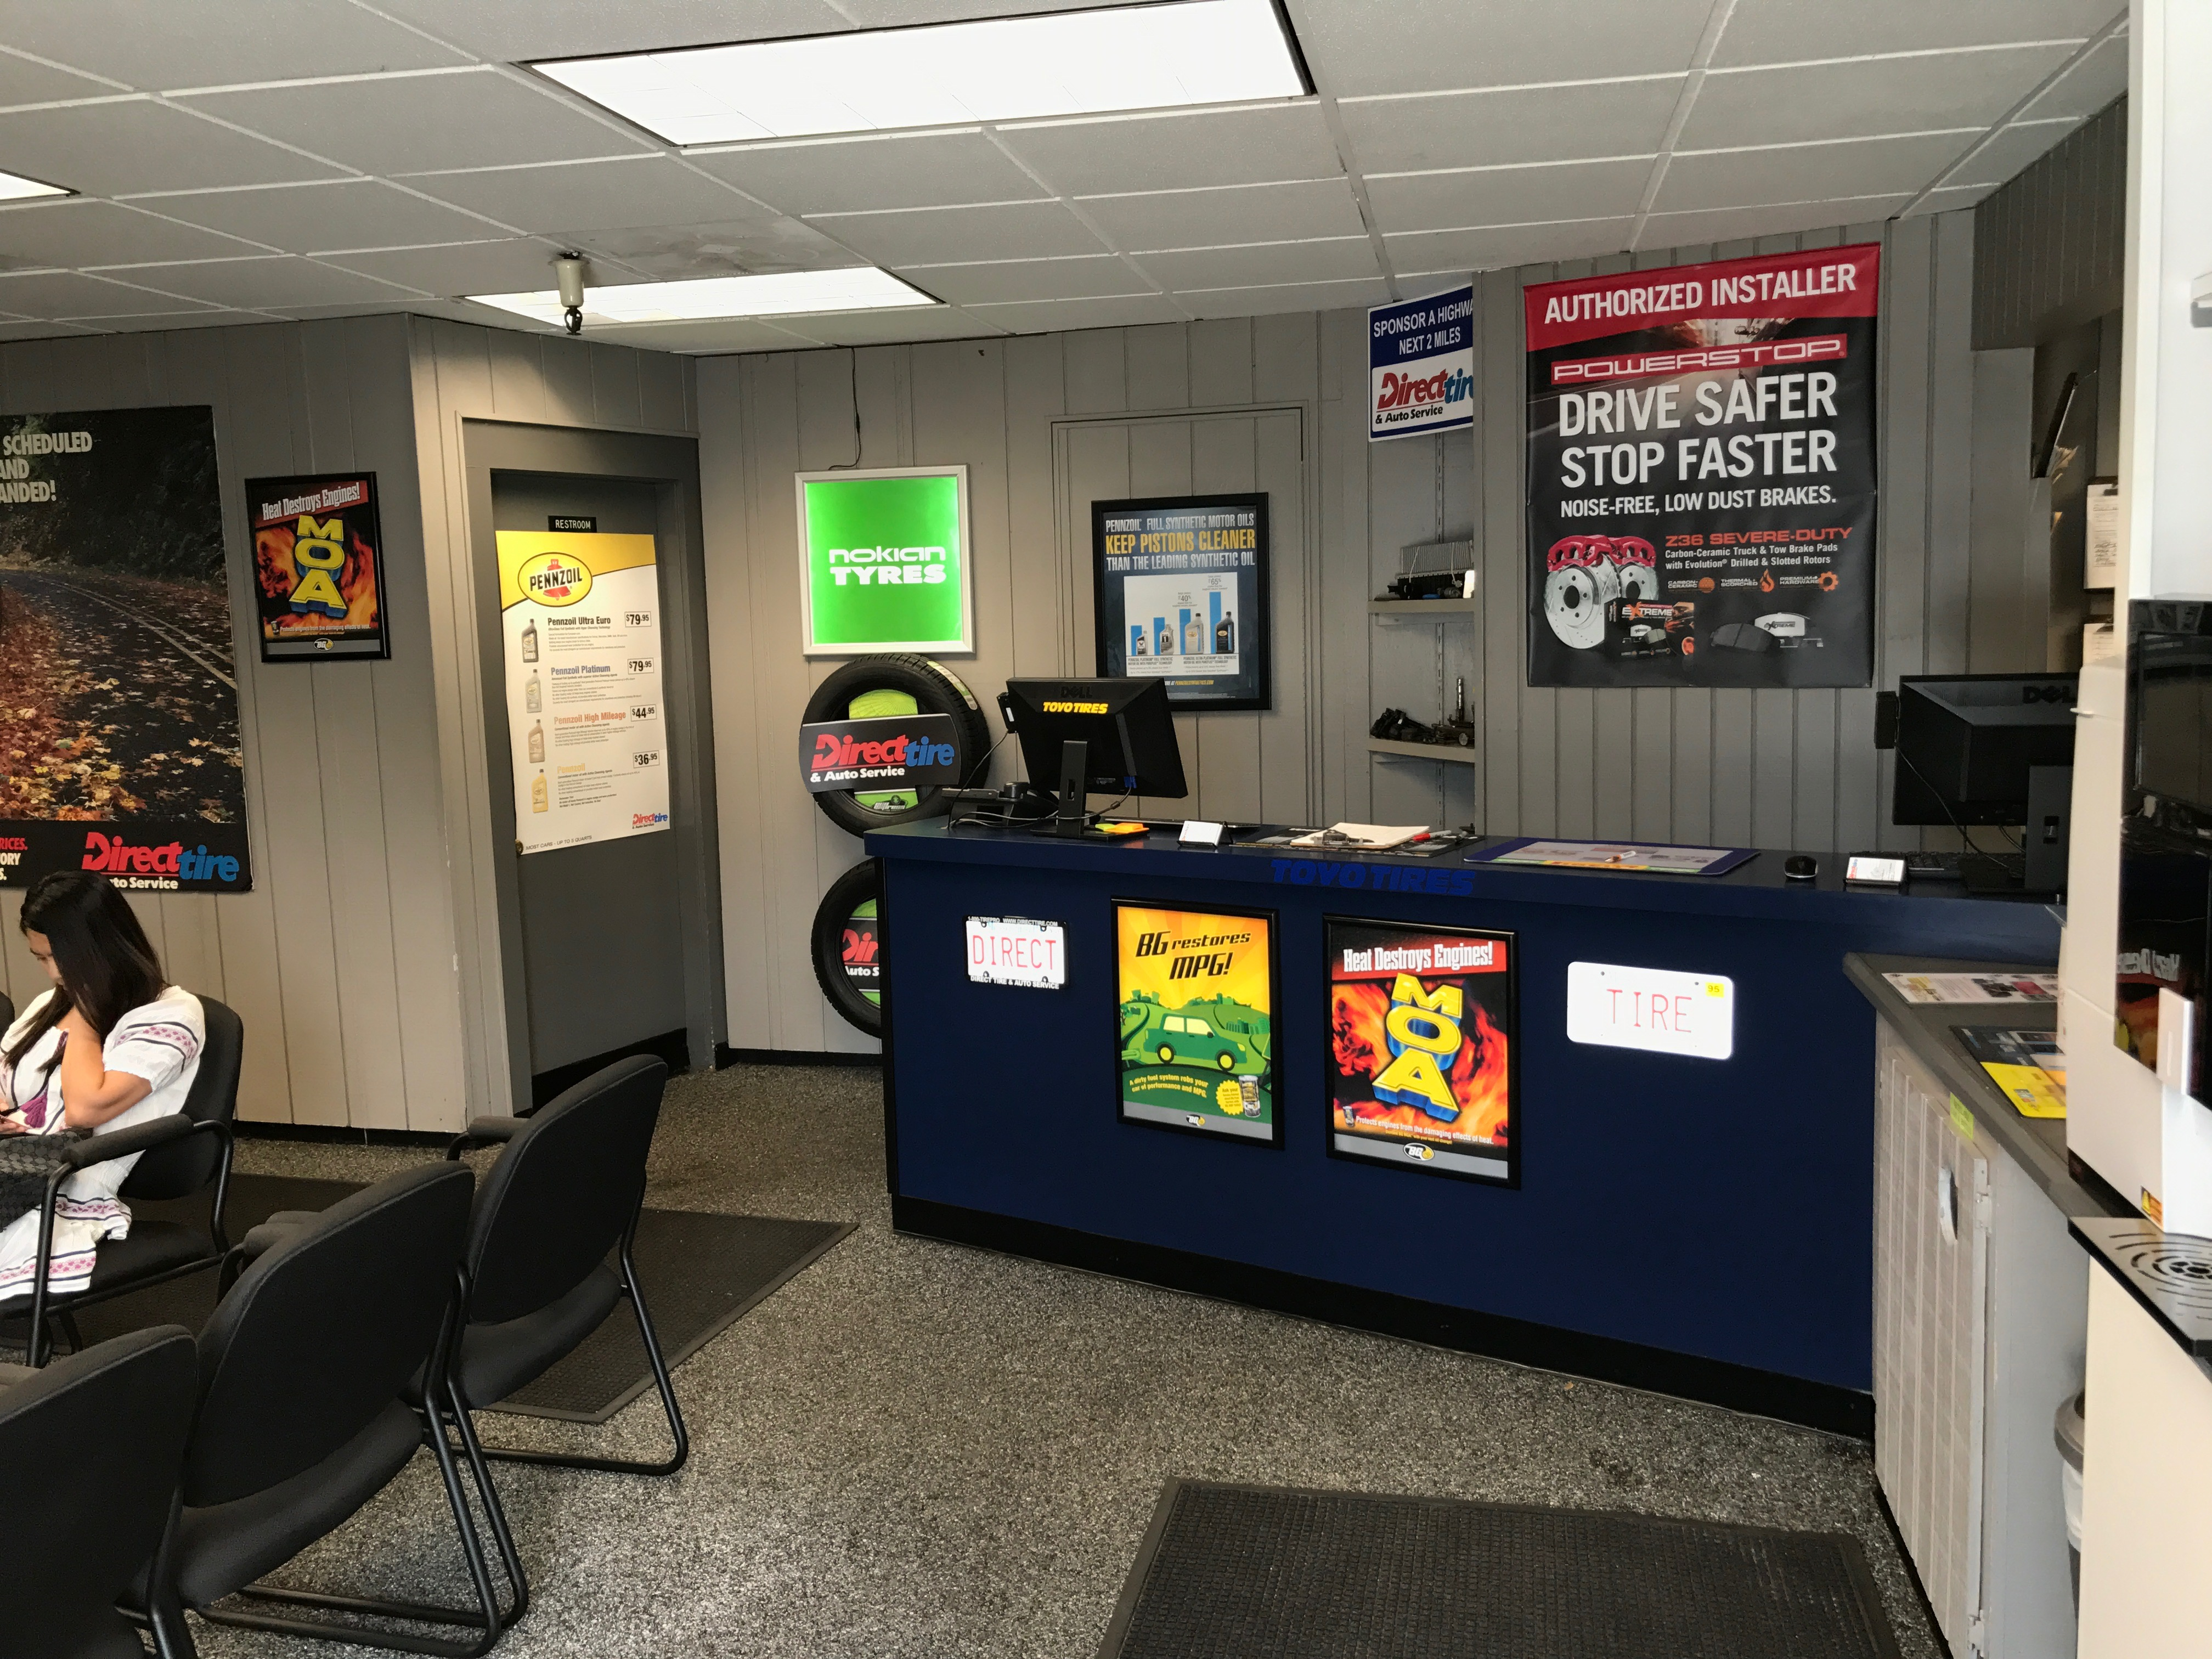 direct tire and auto service automotive service and car repair